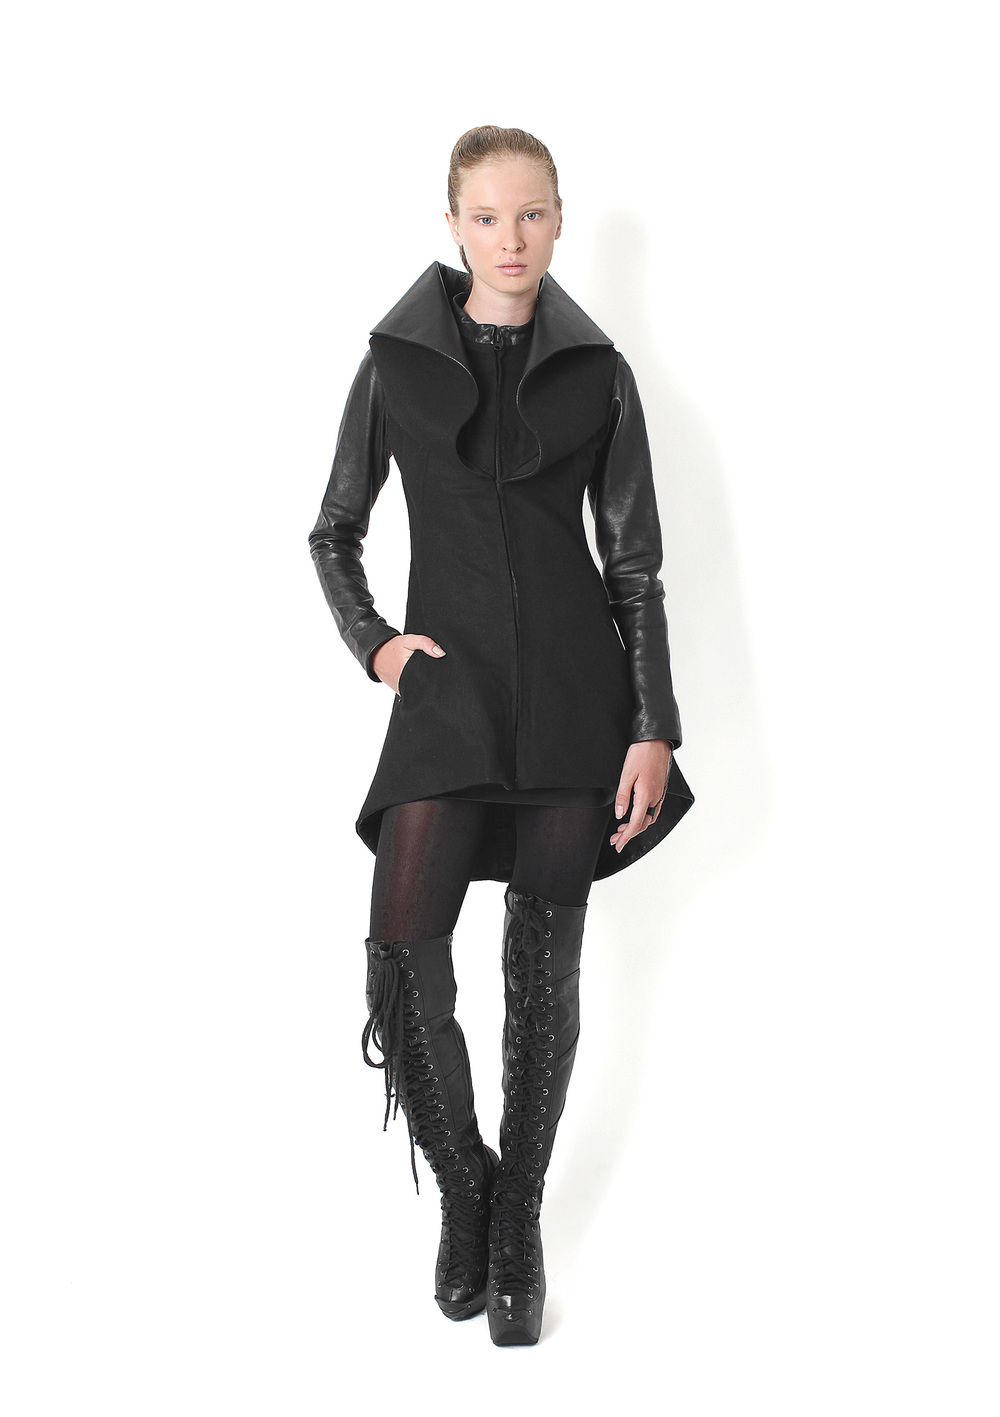 High Collar Jacket, Long plated Boots